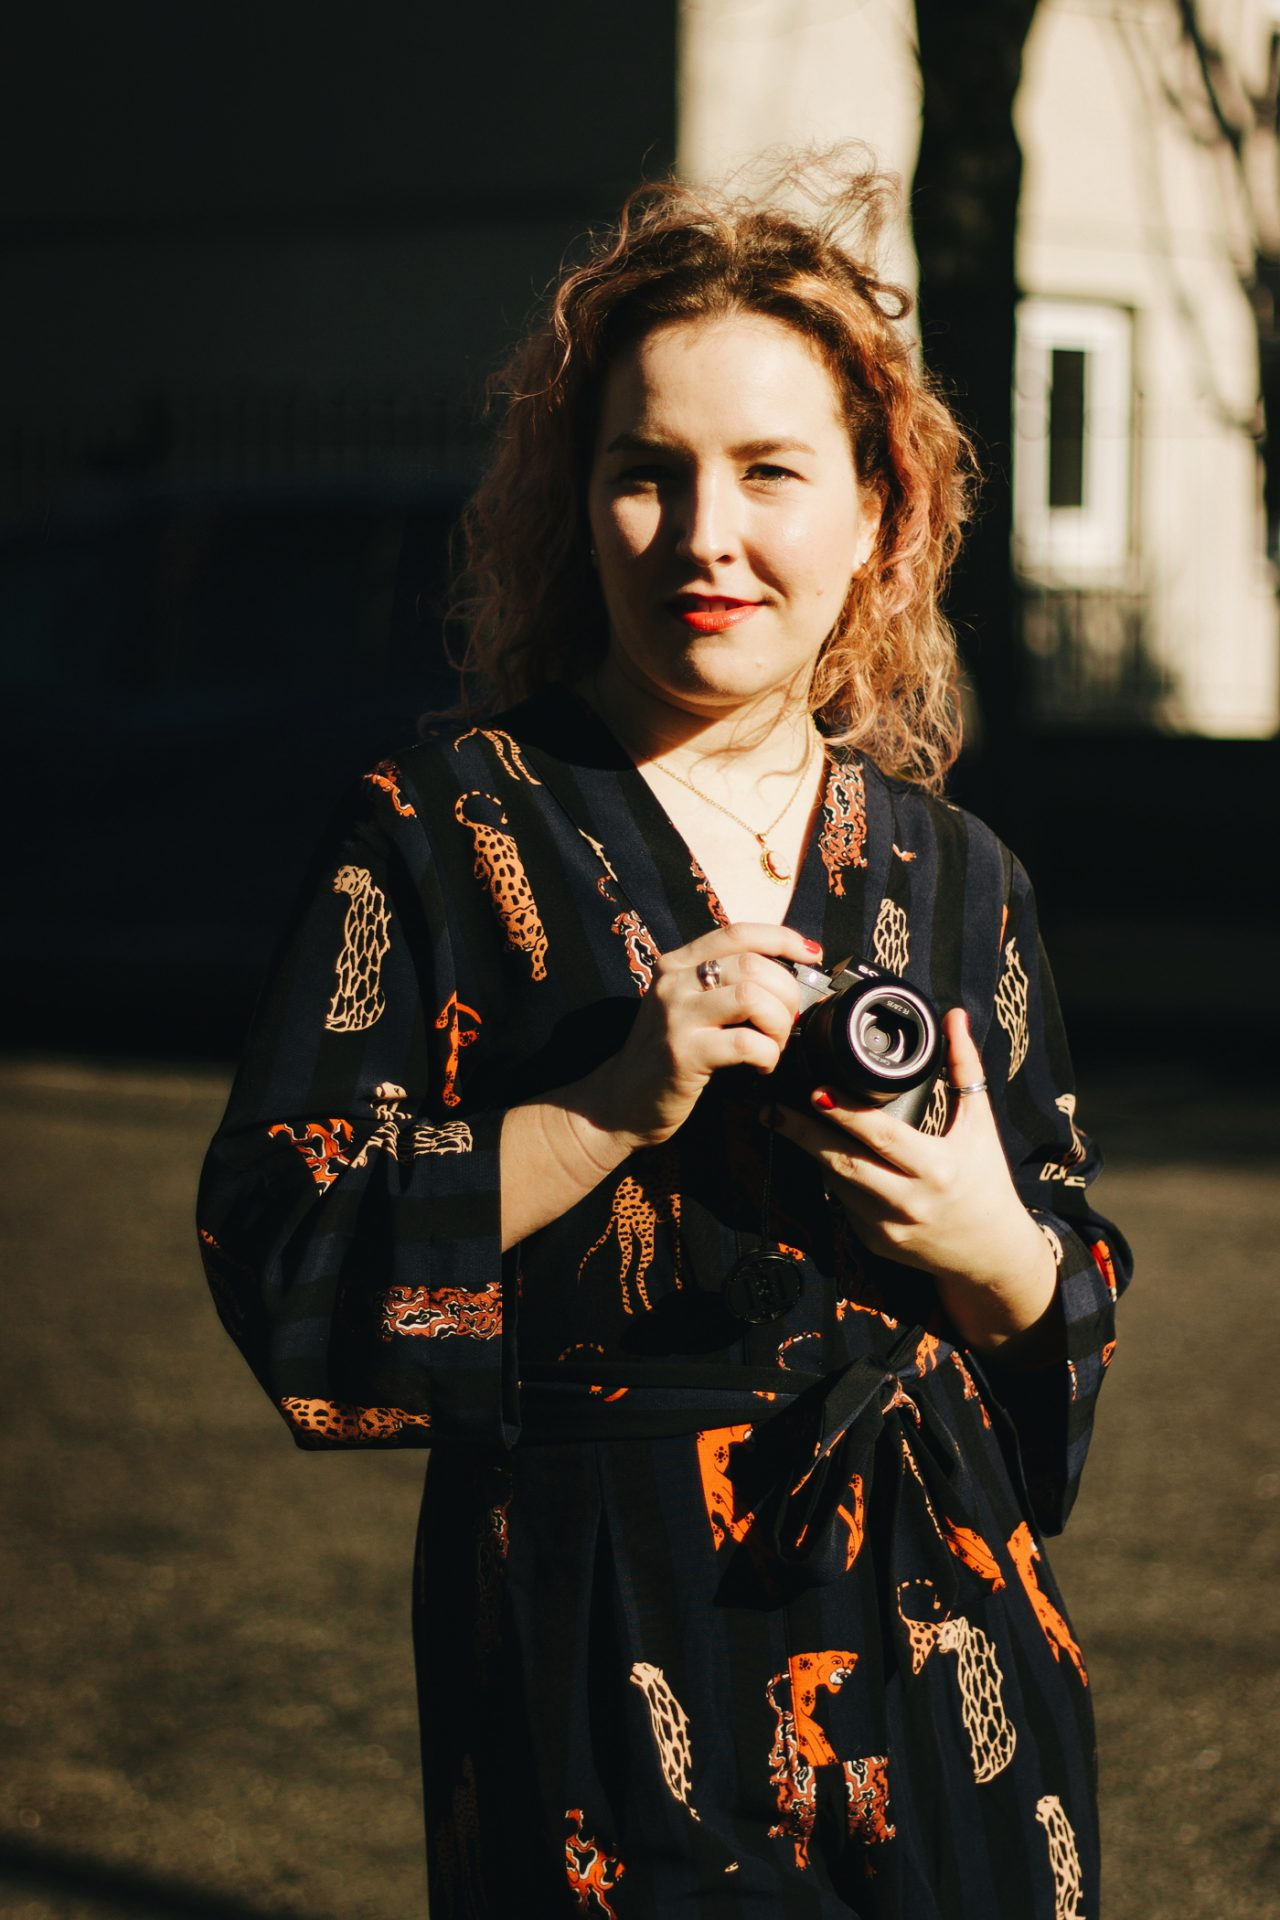 Photo of Martyna with her camera